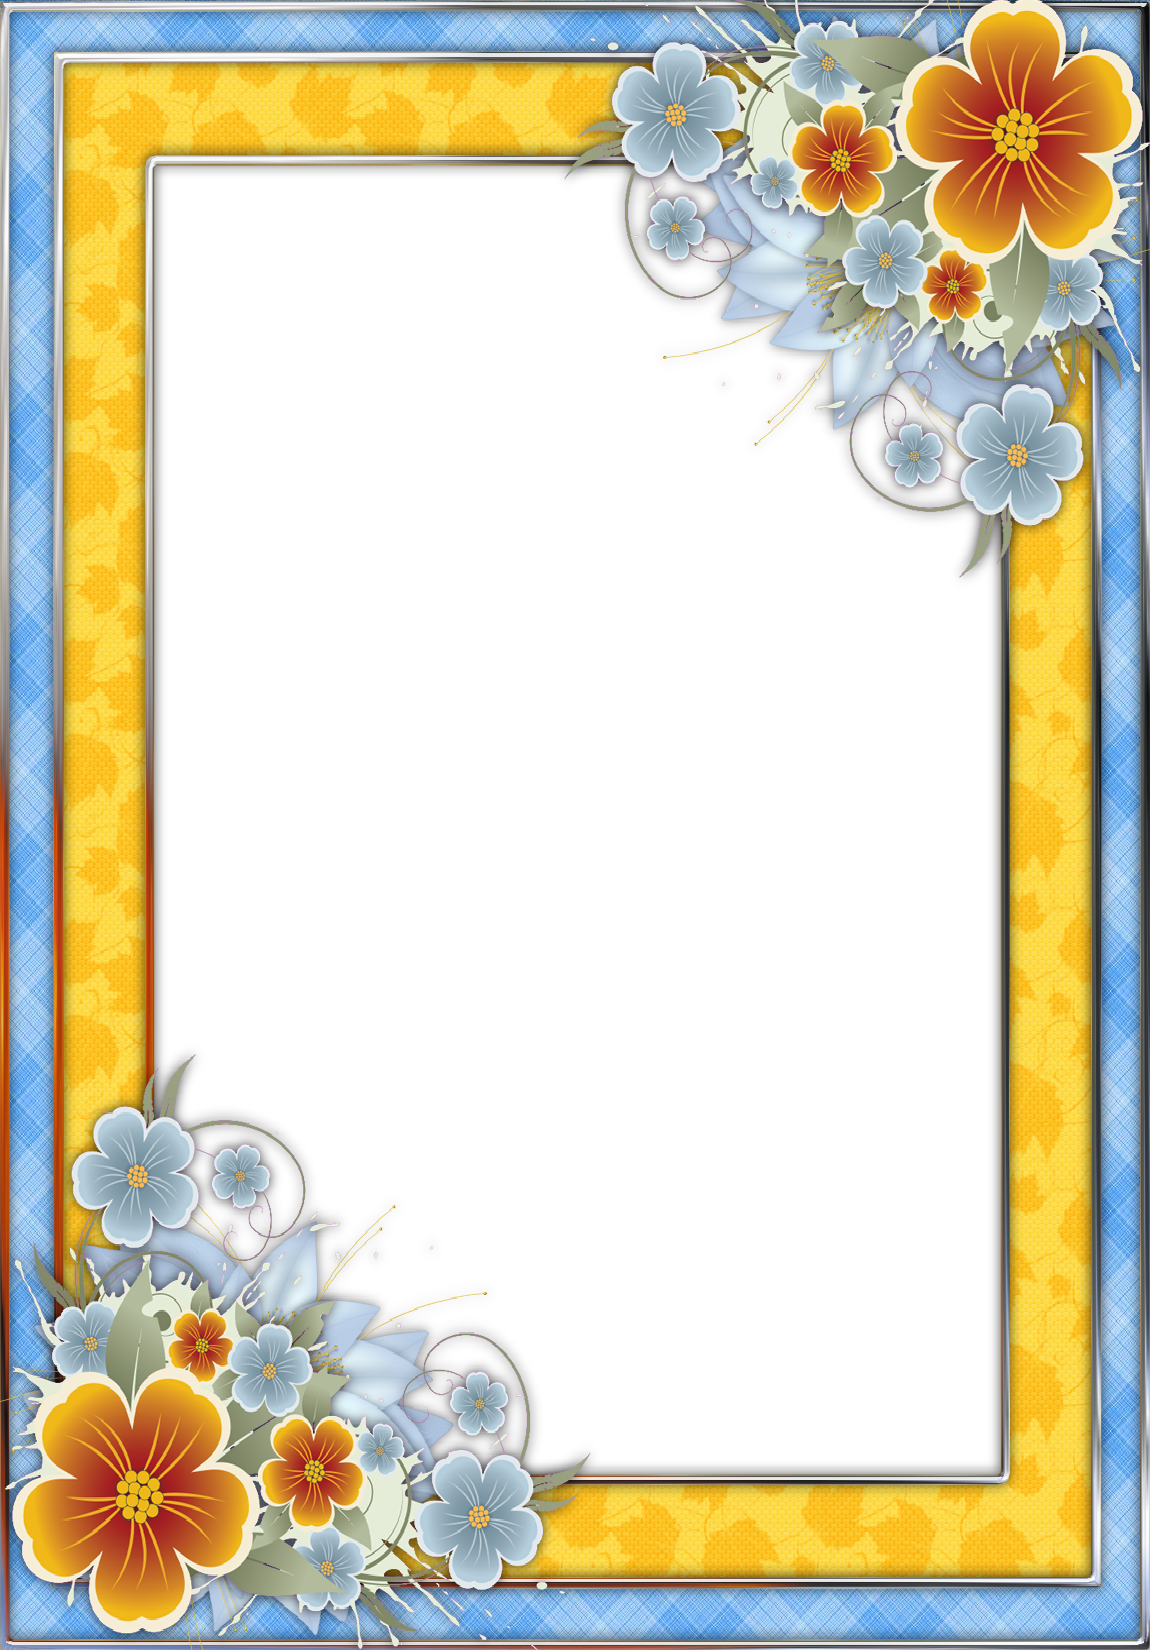 Blue and Yellow Transparent PNG Frame with Flowers